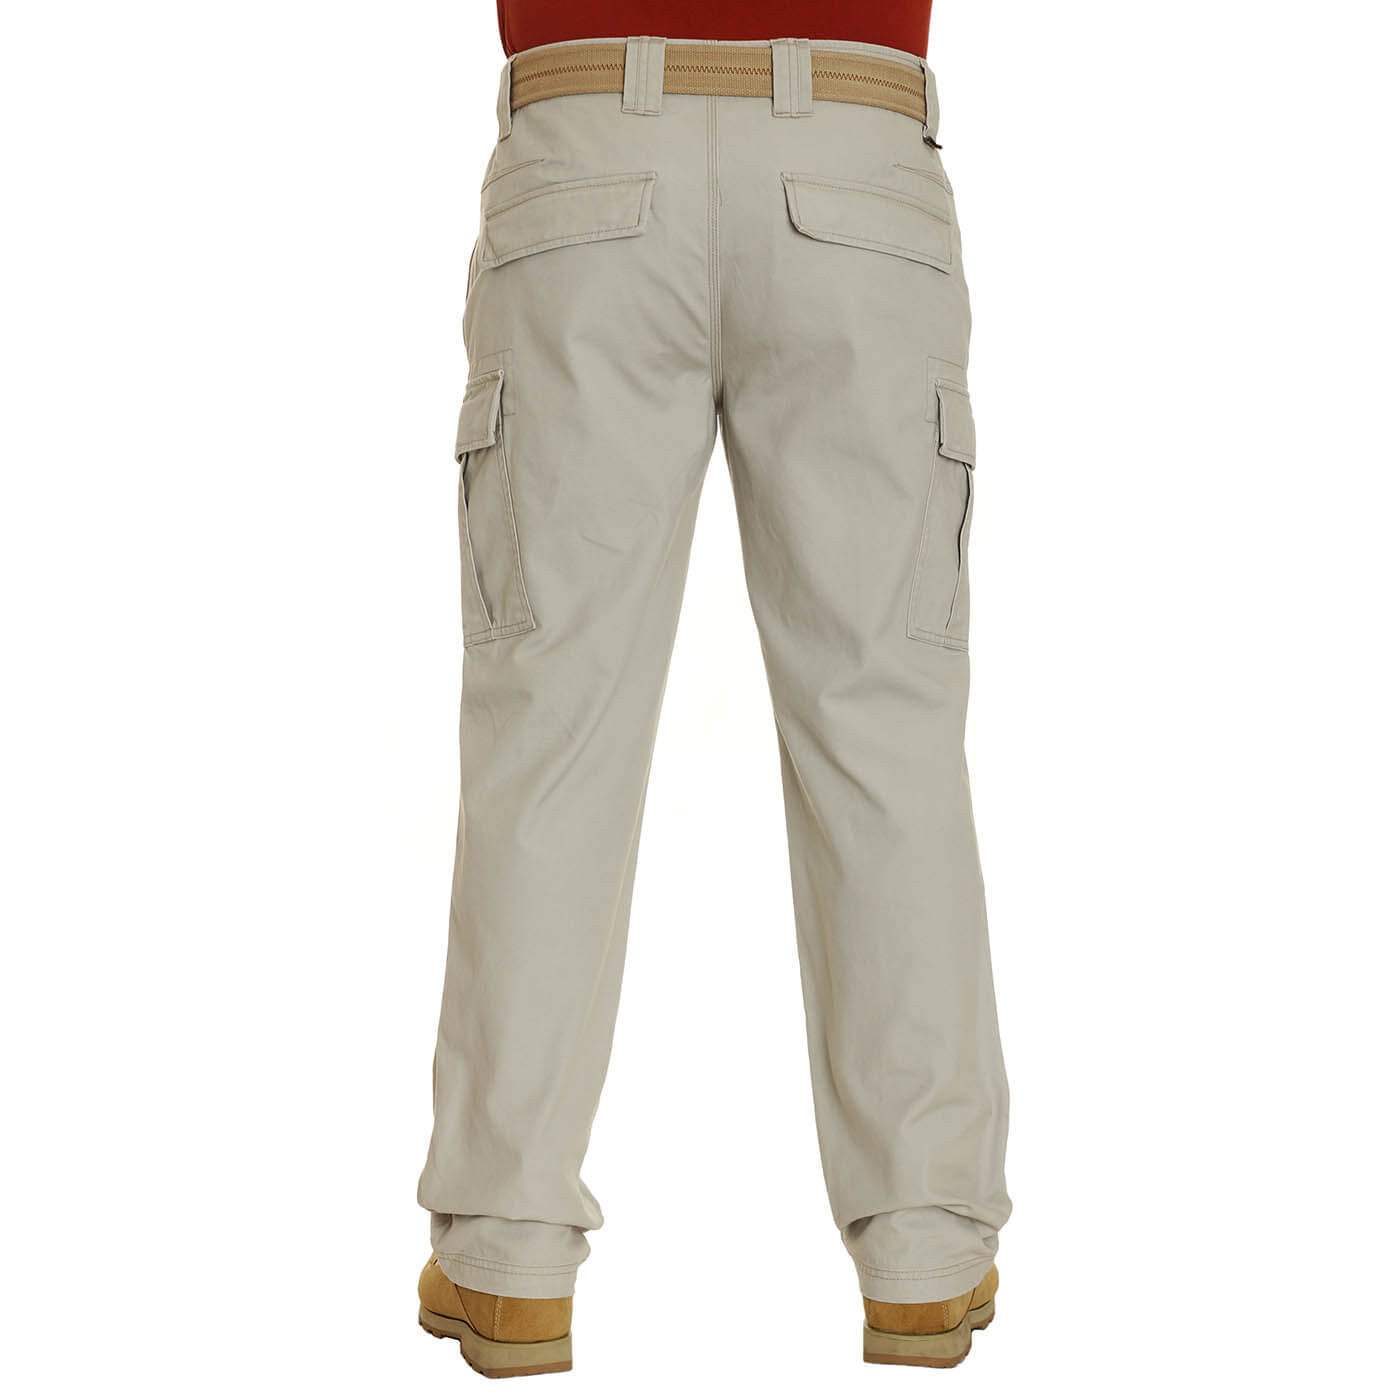 BUSHMANSHOP MISSION MEN'S KHAKI BROWN HEAVY DUTY COTTON CANVAS CARGO TROUSERS